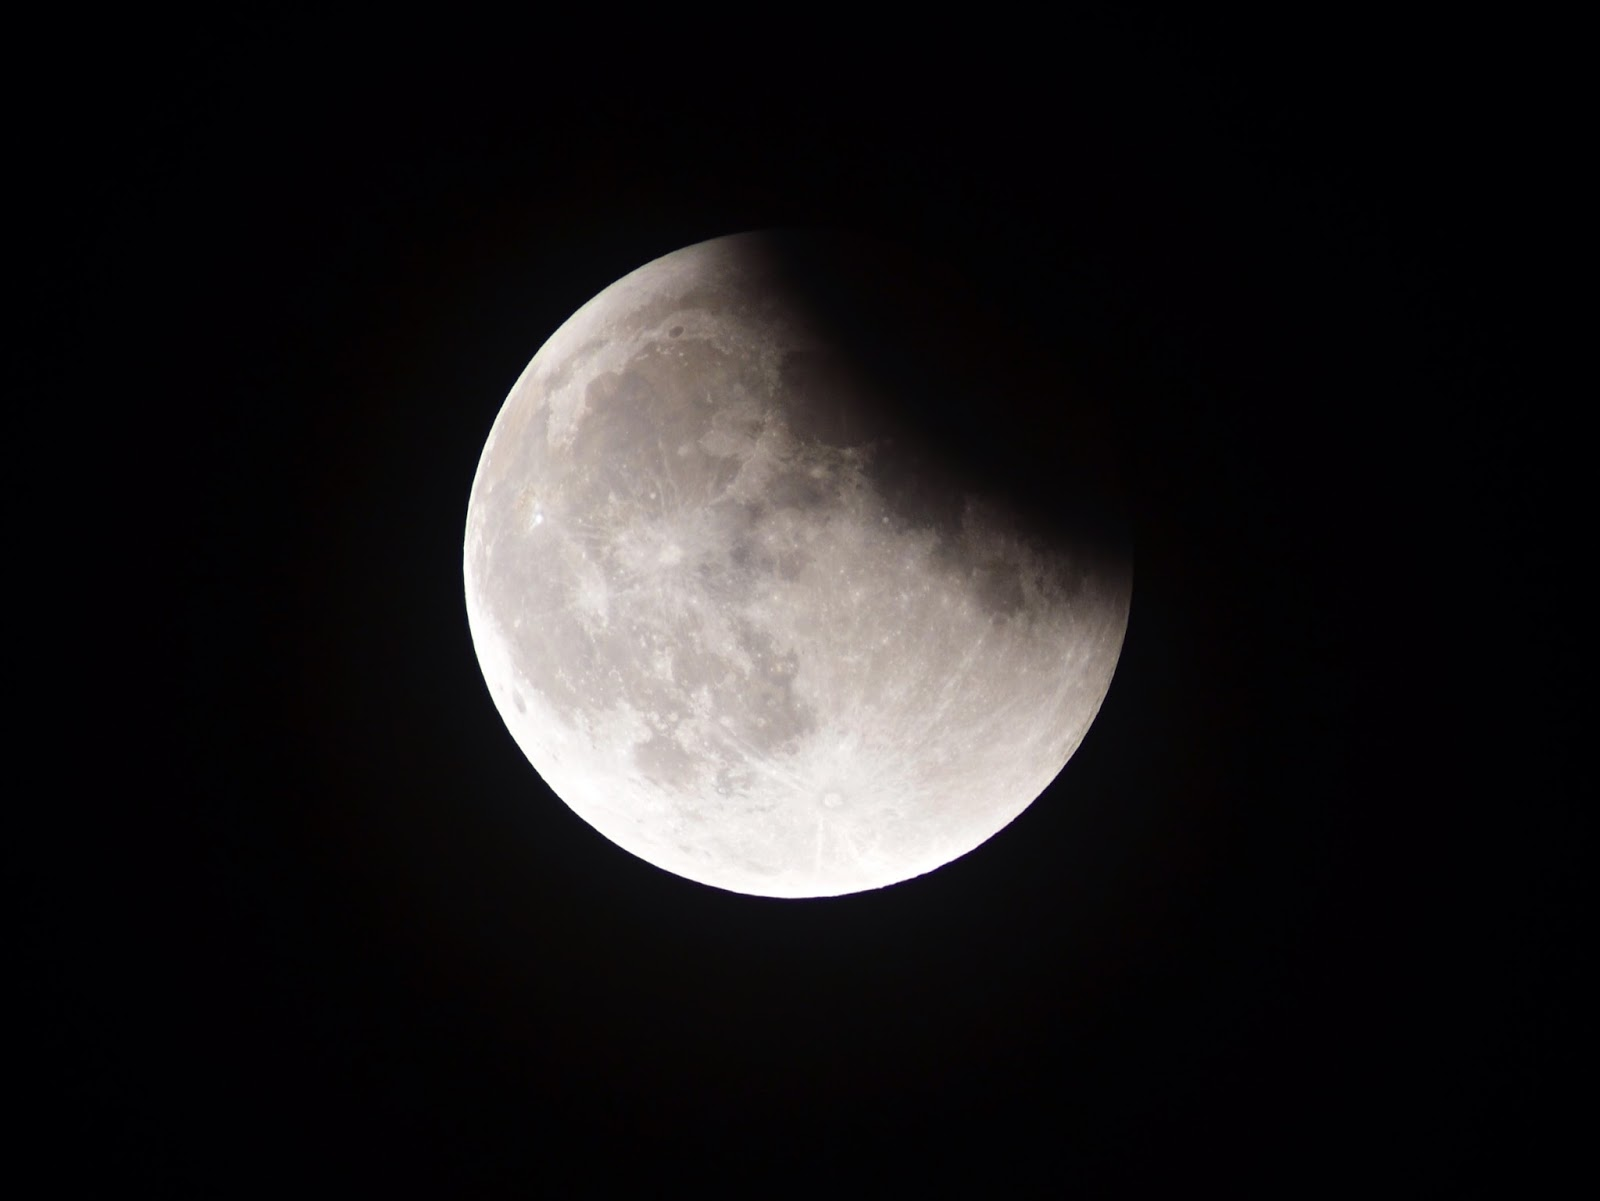 lunar eclipse 12, when the new moon rose for some lucky viewers, the end of the month will  be even more exciting: there's a total lunar eclipse coming on.